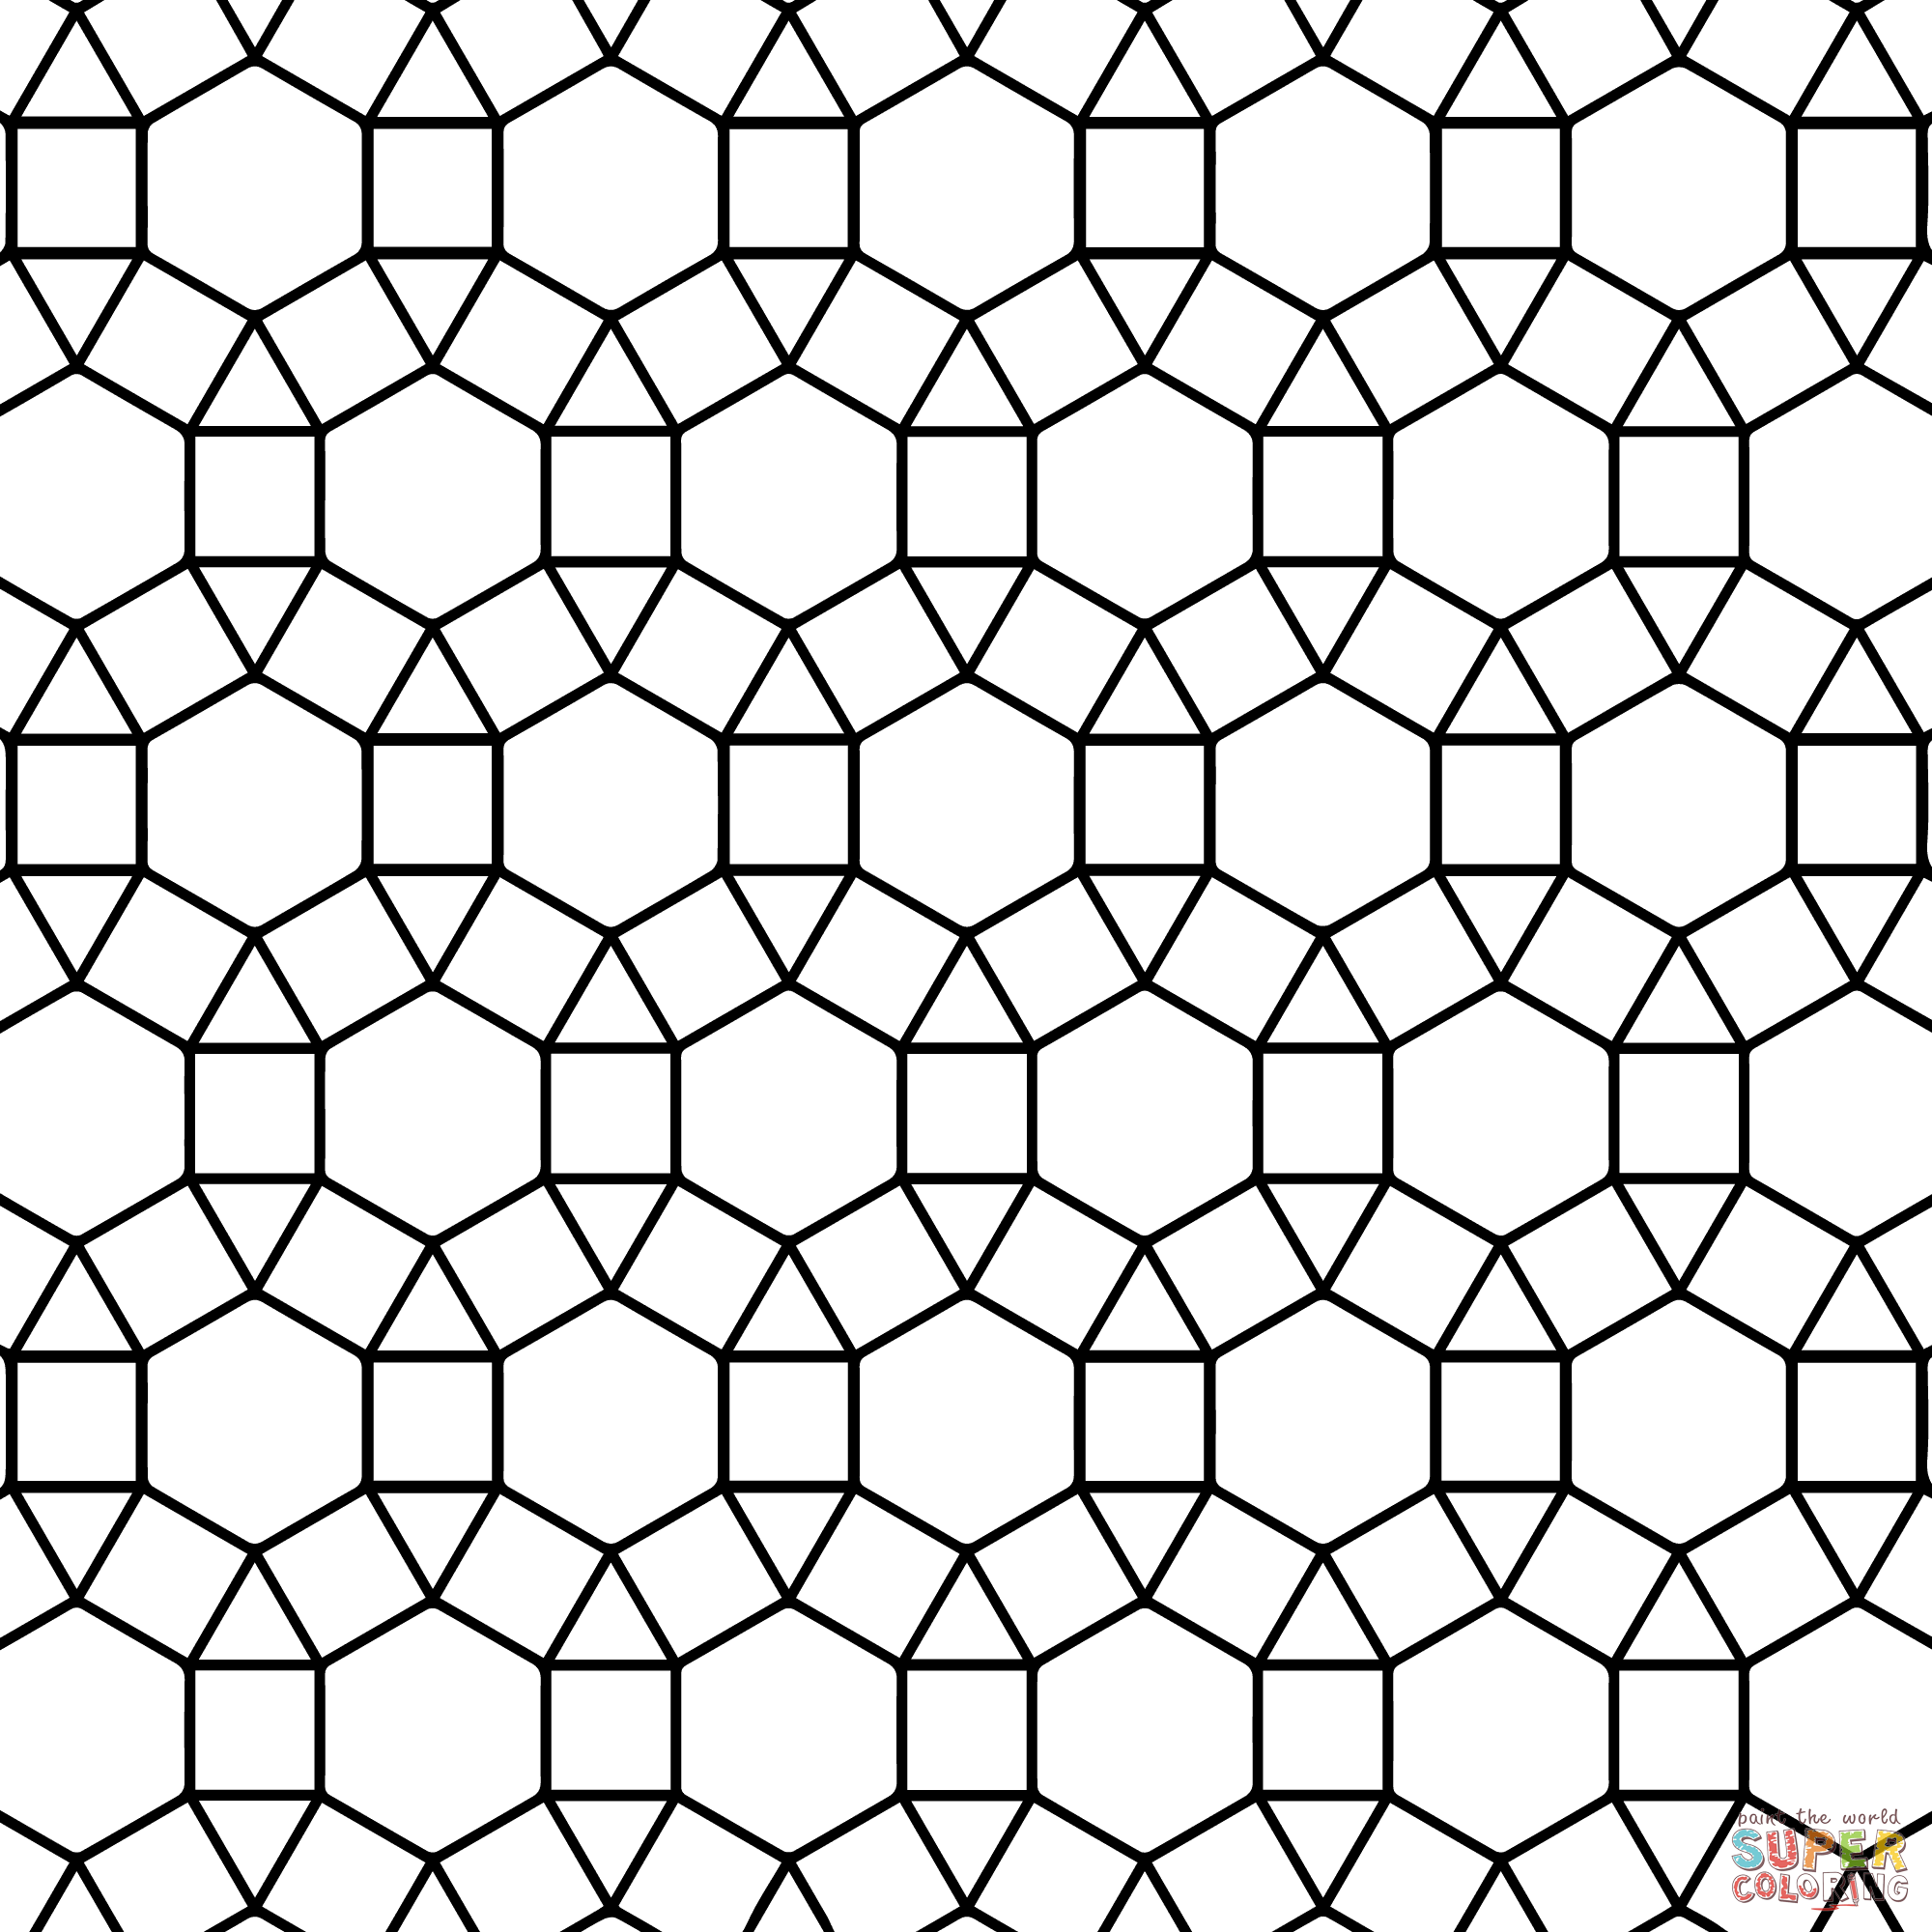 Worksheets Tessellation Worksheets To Color dibujos para mosaicos pattern everywhere tessellation wi